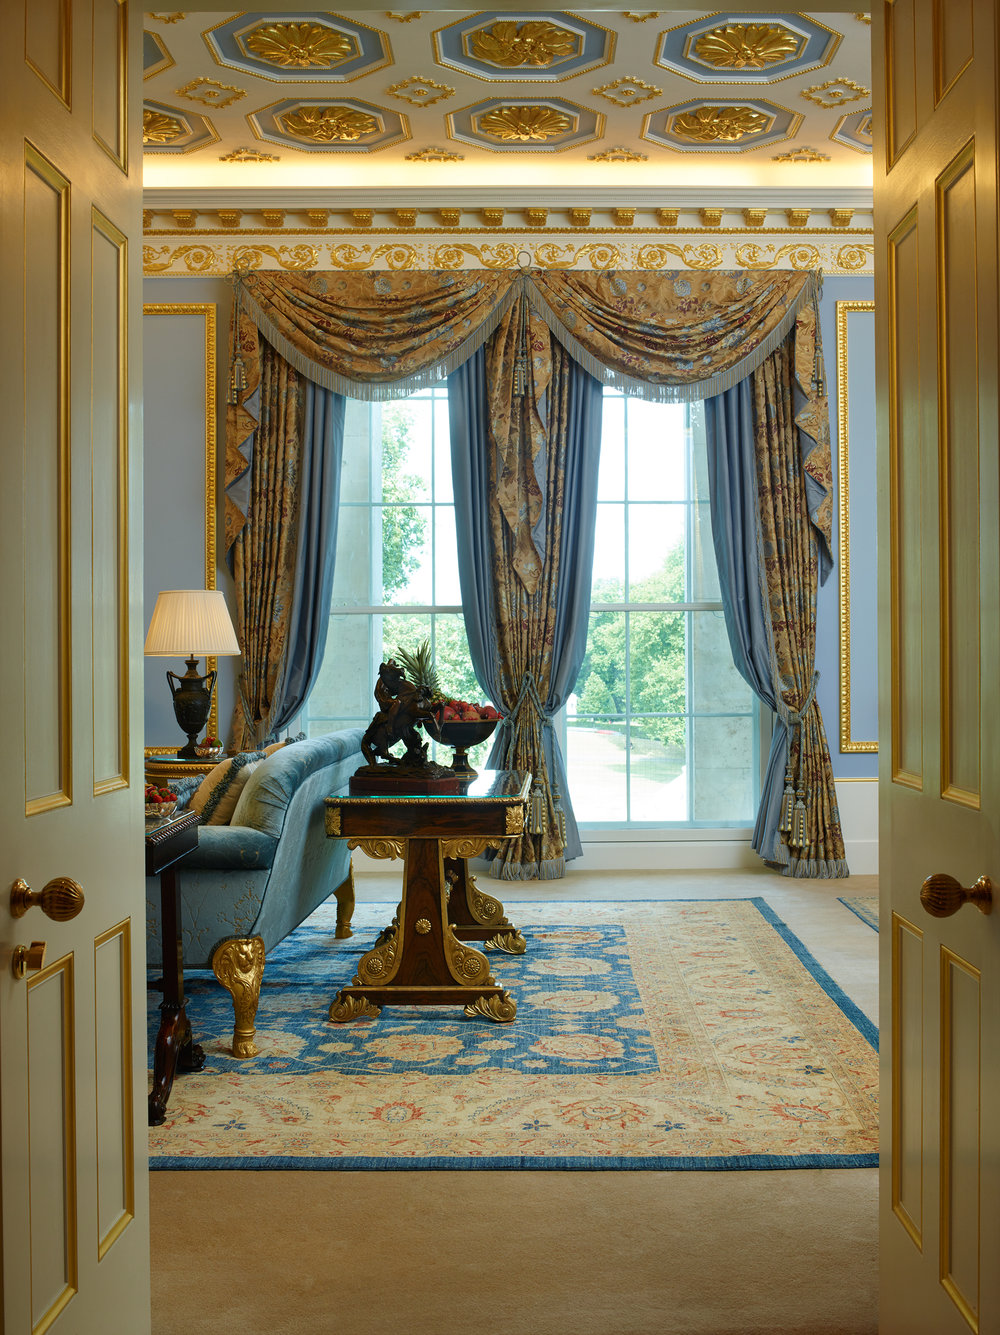 ST - The_Royal_Suite_5290.jpg